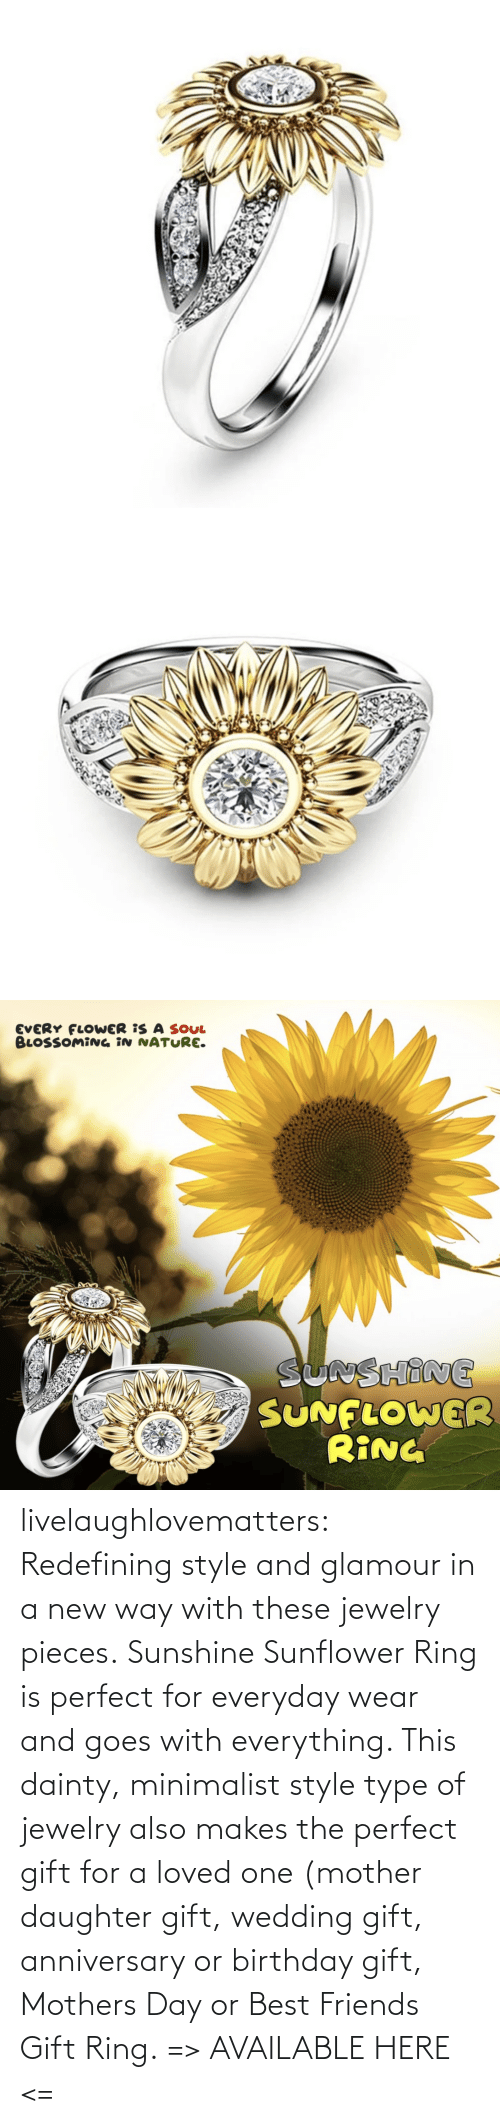 Mother's Day: livelaughlovematters:  Redefining style and glamour in a new way with these jewelry pieces. Sunshine Sunflower Ring is perfect for everyday wear and goes with everything. This dainty, minimalist style type of jewelry also makes the perfect gift for a loved one (mother daughter gift, wedding gift, anniversary or birthday gift, Mothers Day or Best Friends Gift Ring. => AVAILABLE HERE <=